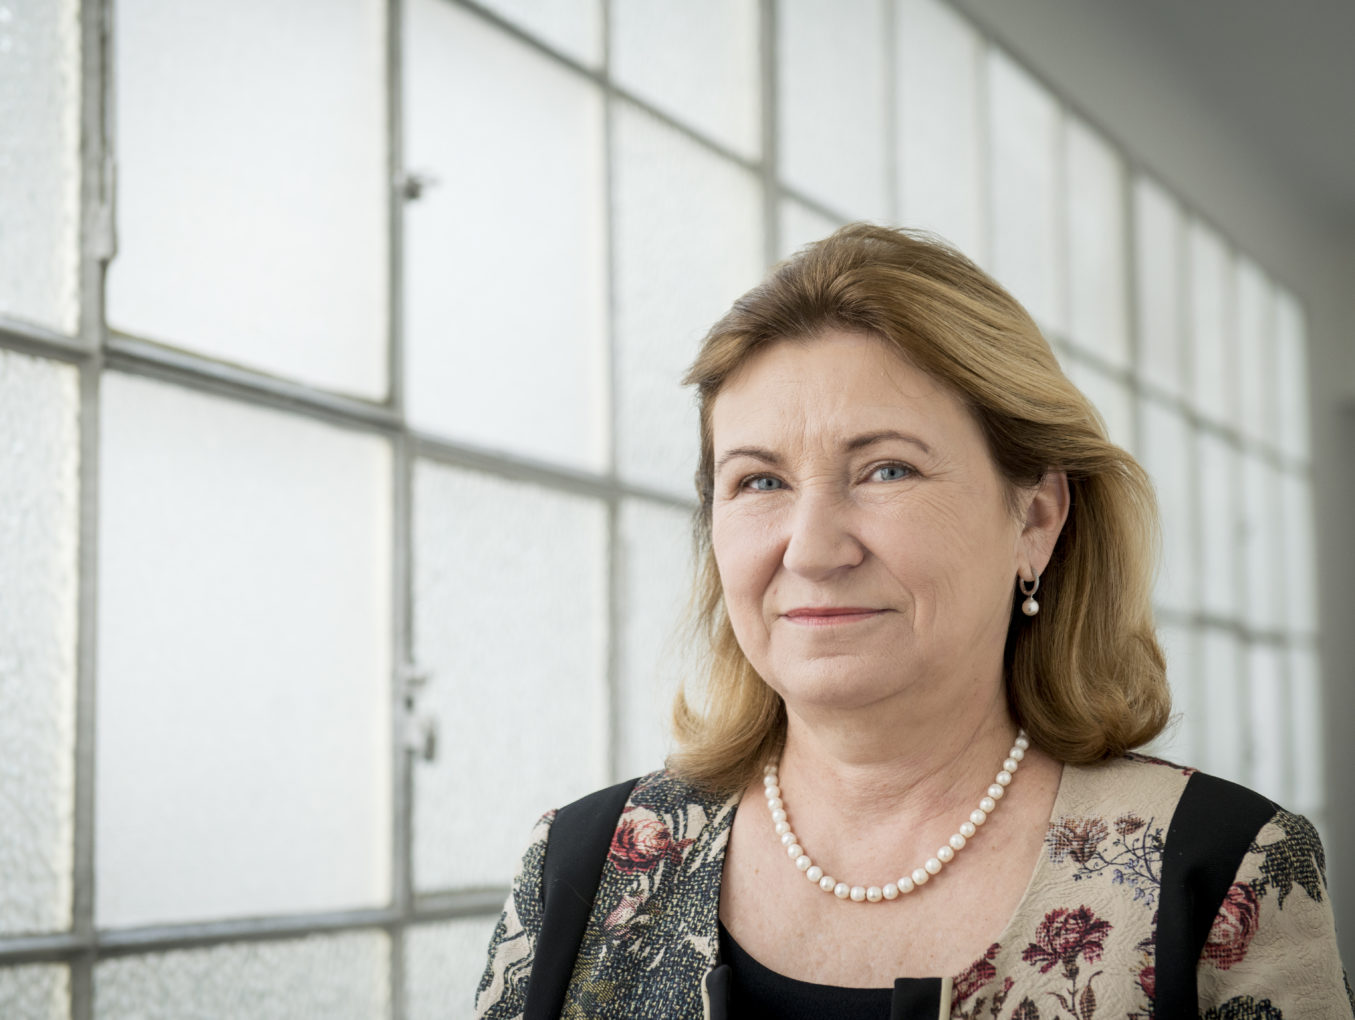 COMMENTARY OF EVA ZAMRAZILOVÁ: A FURTHER DECELERATION CAN BE EXPECTED IN 2020